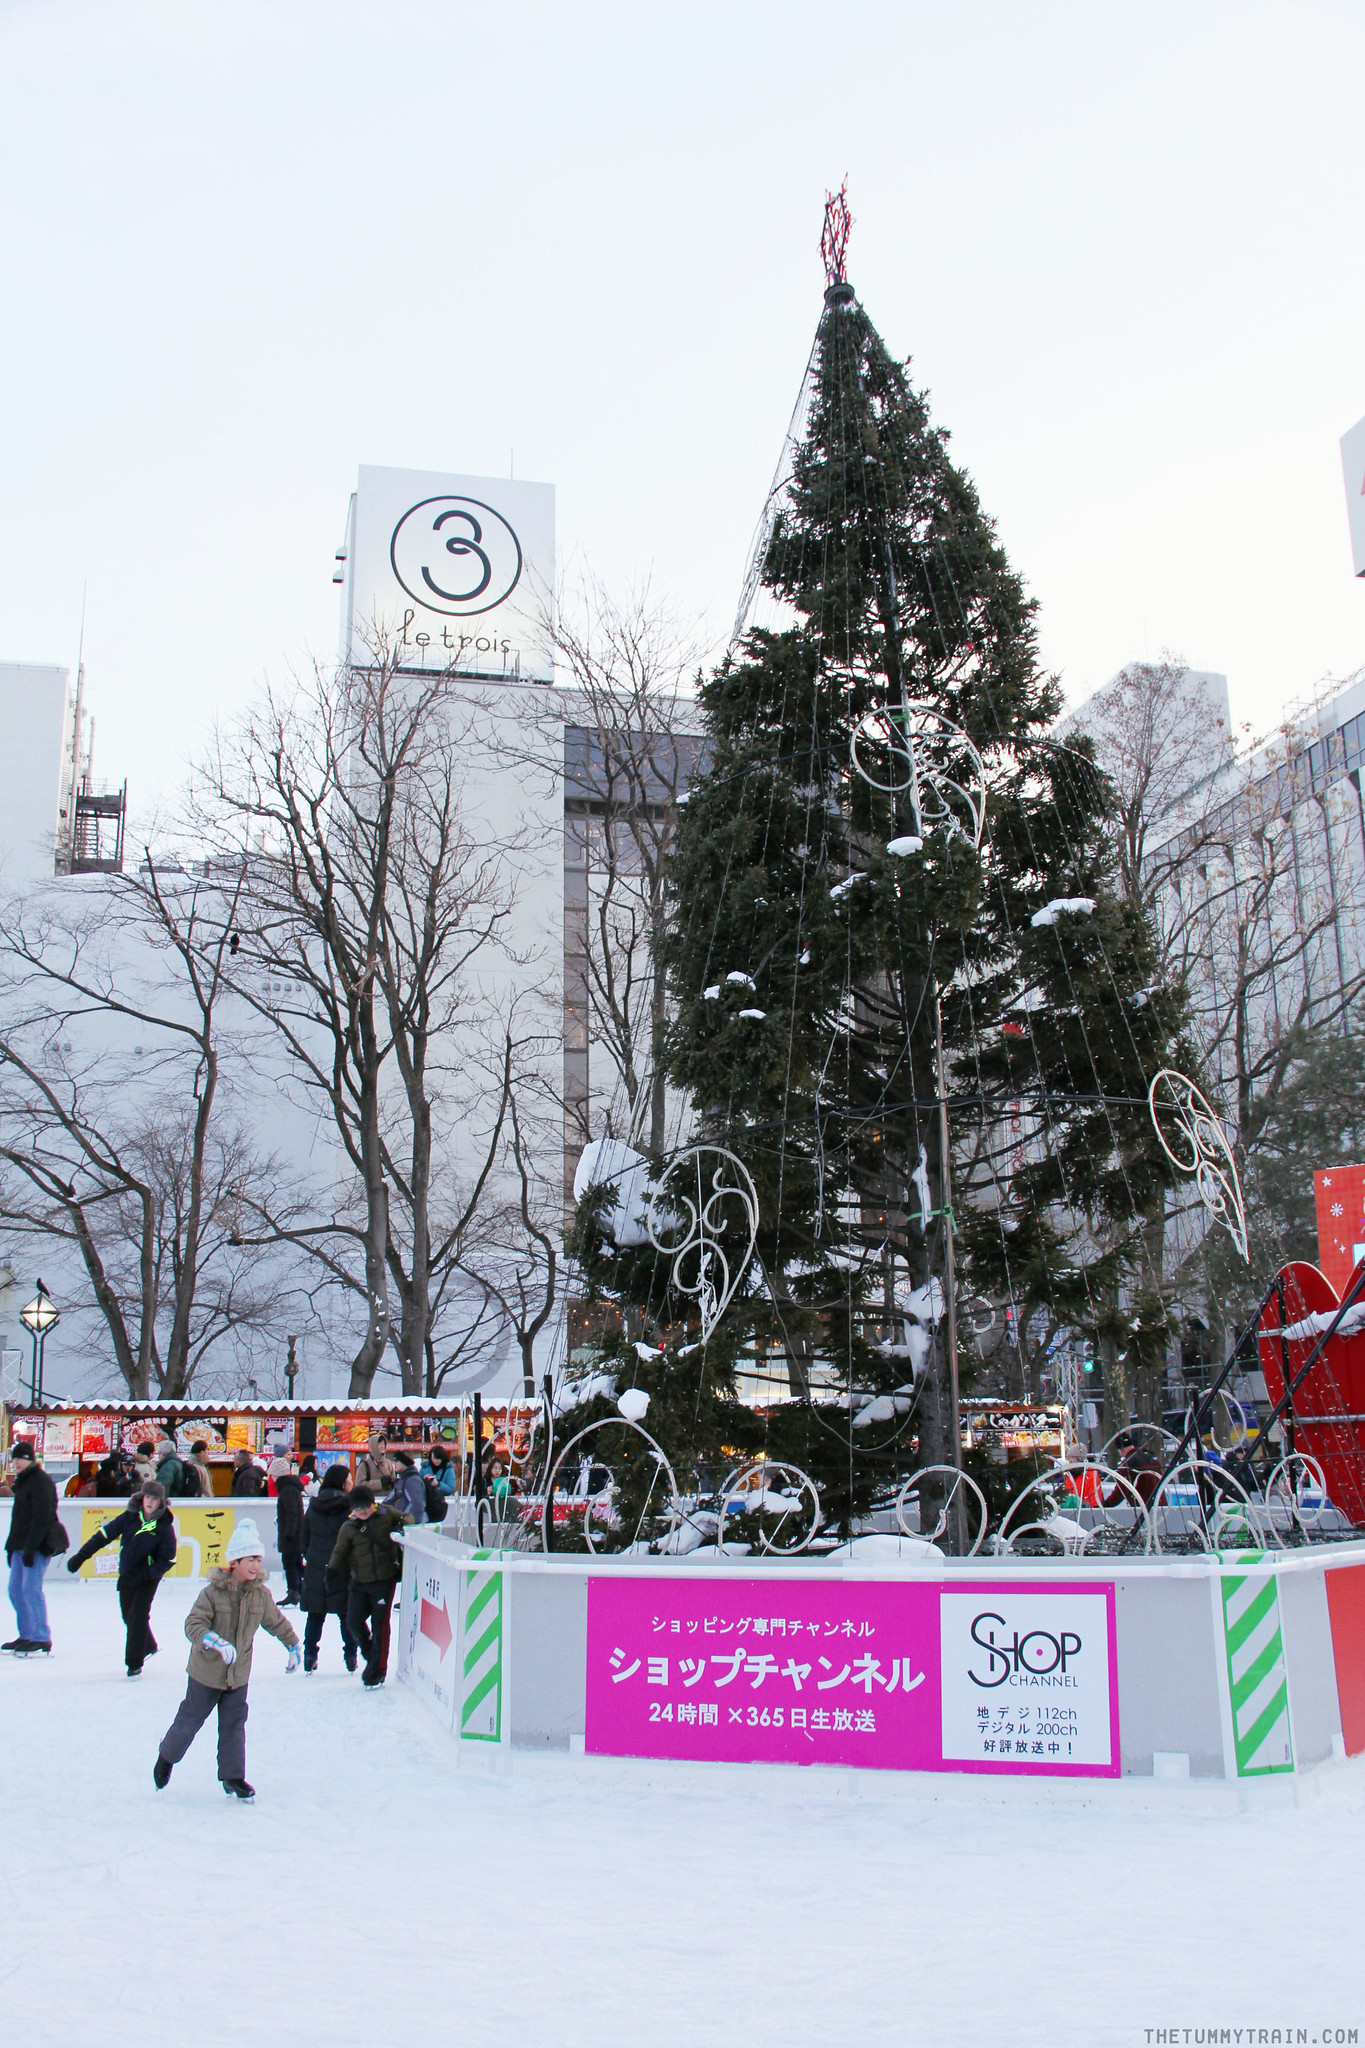 32877016156 b0f6ee3031 k - Sights, Sounds, and Smells at the 68th Sapporo Snow Festival at Odori Park